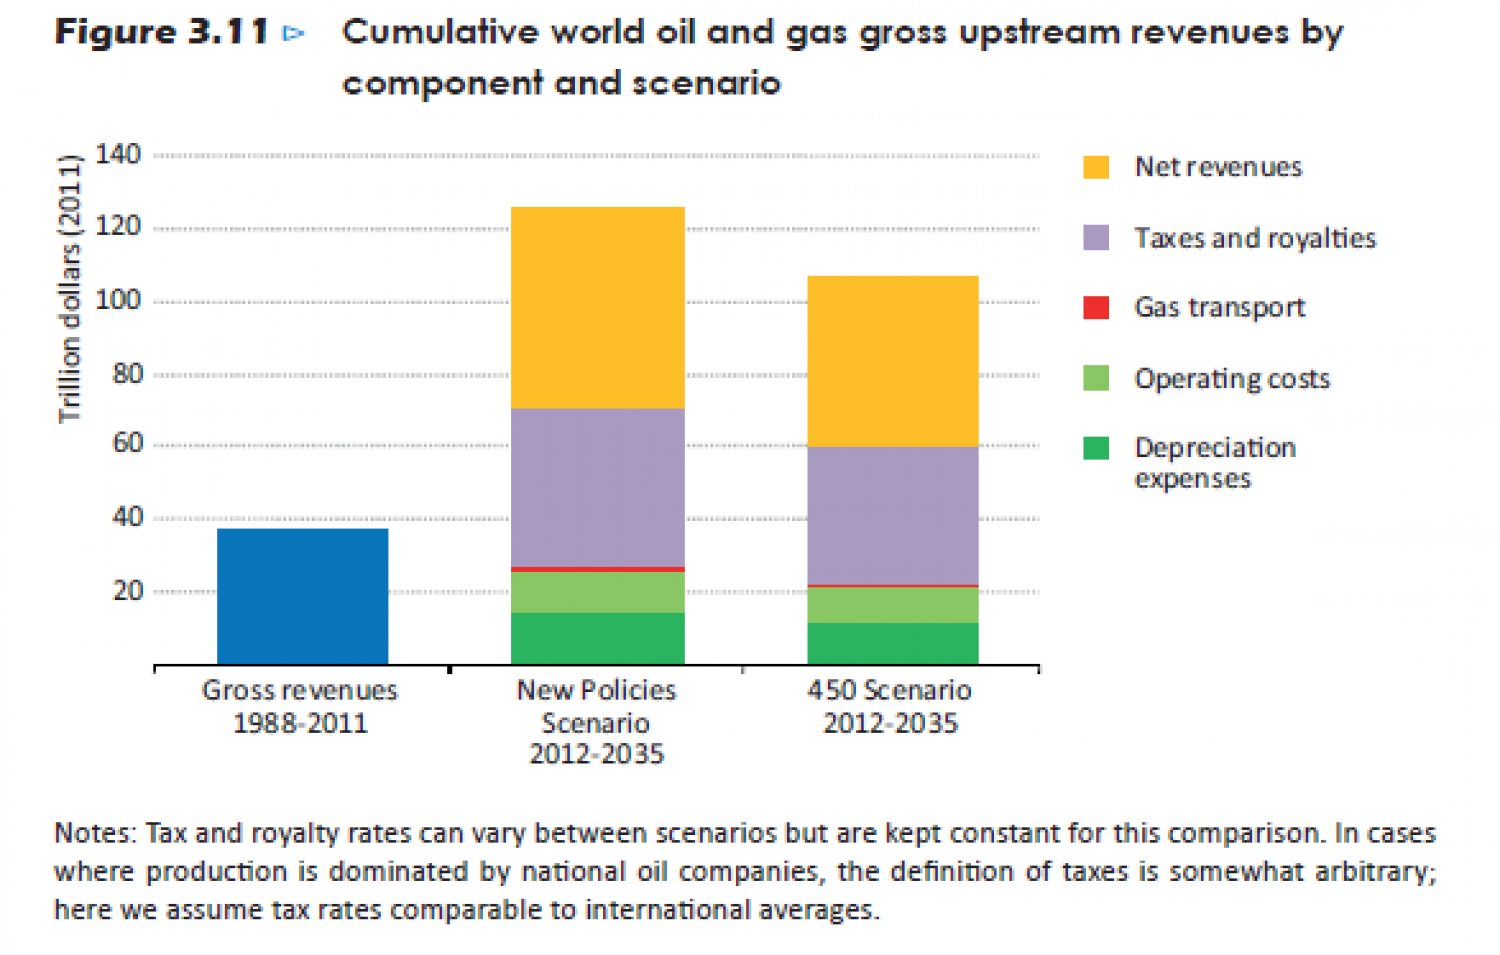 Cumulative world oil and gas gross upstream revenues by component and scenario Infographic